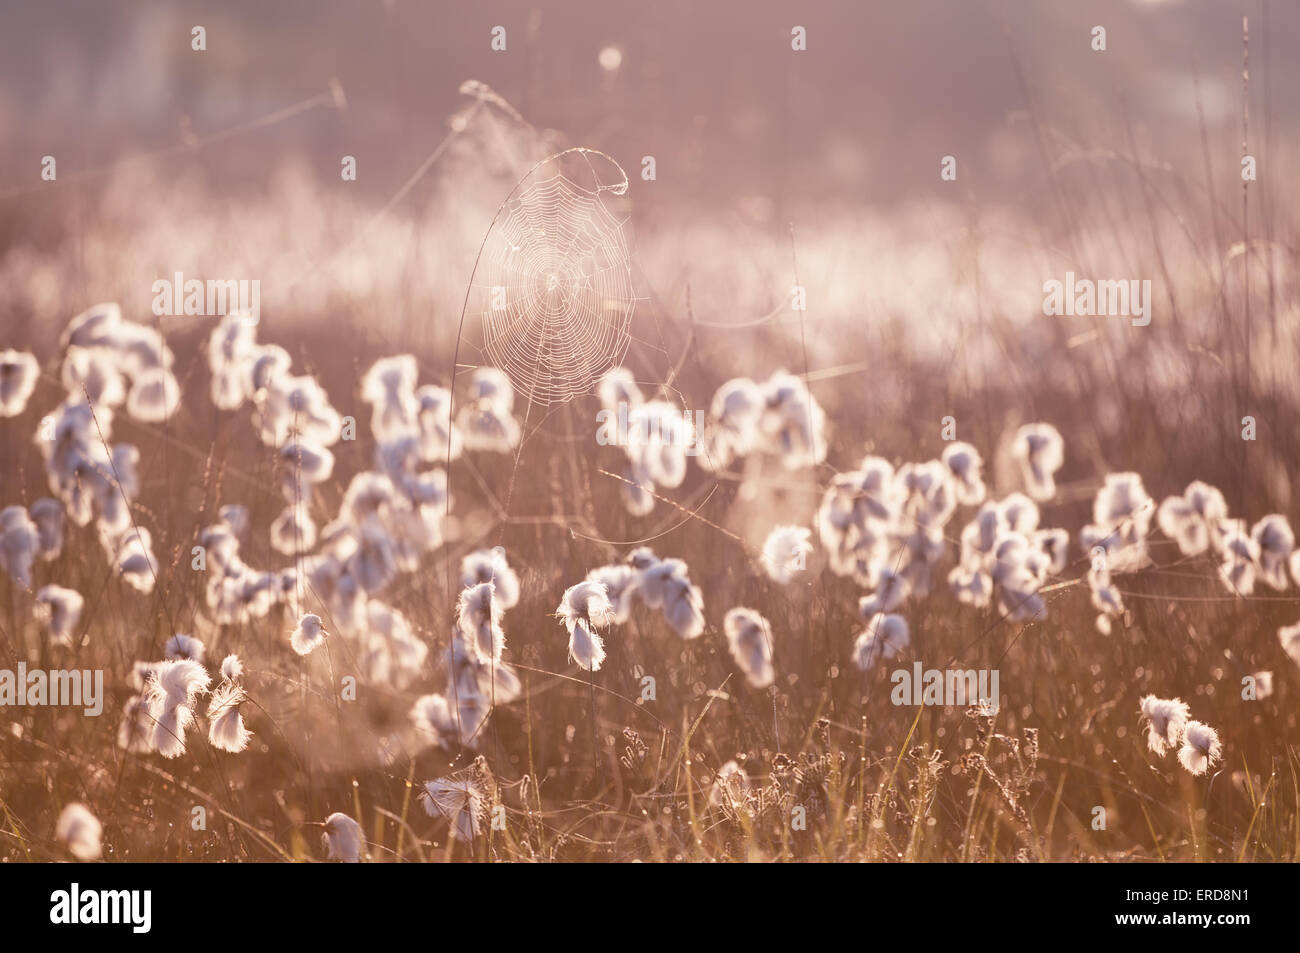 cottograss and spiderweb in morning sunlight - Stock Image